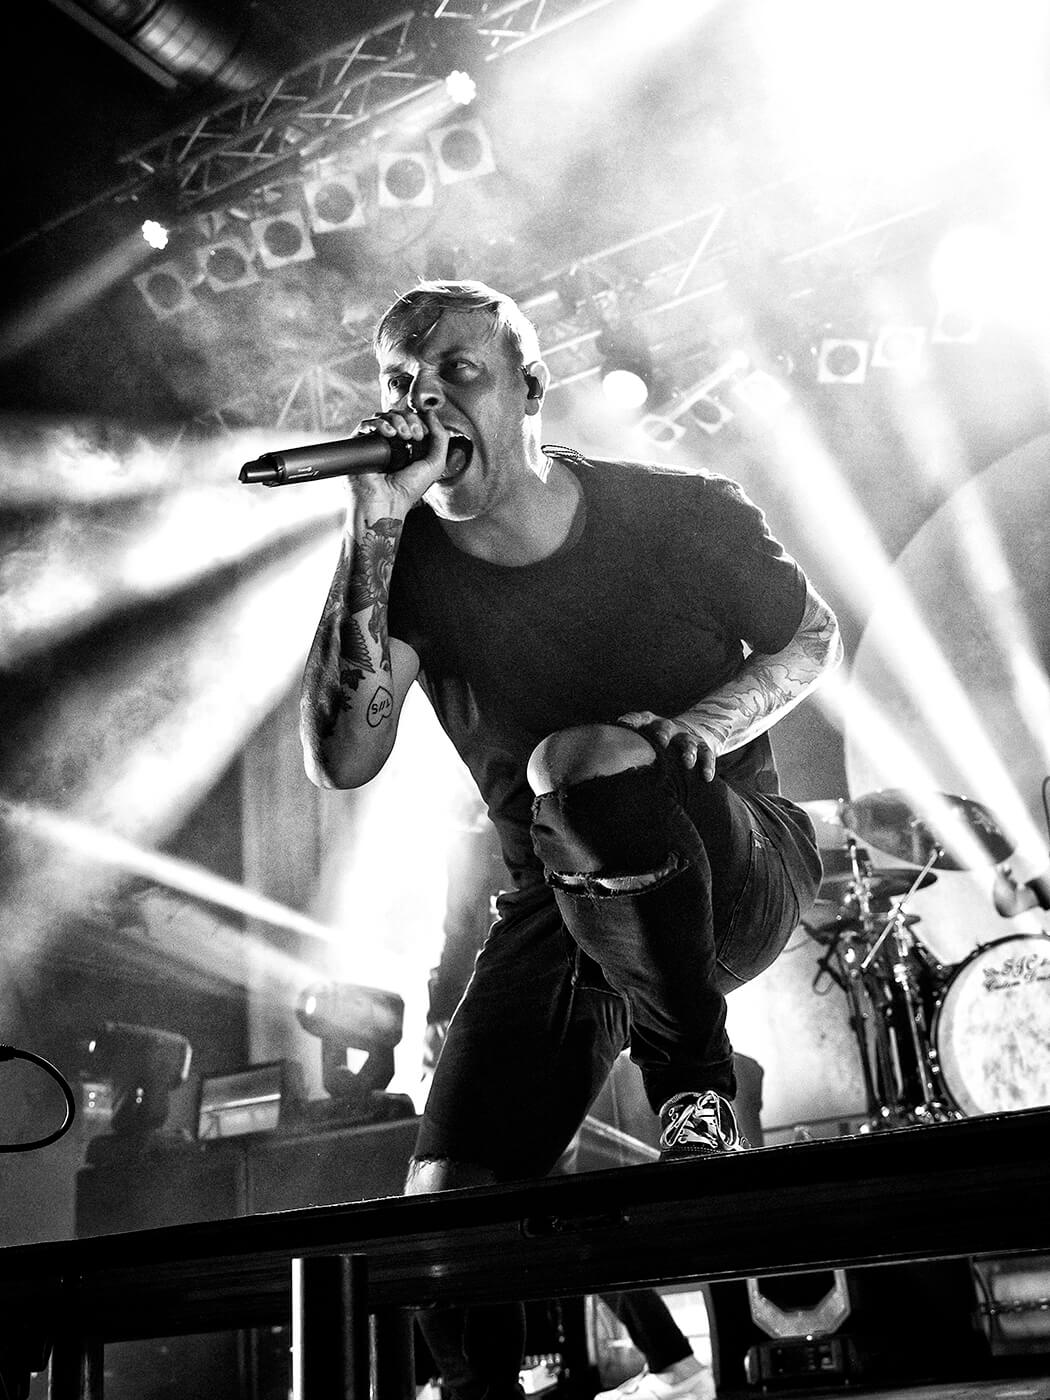 Sam Carter of Architects